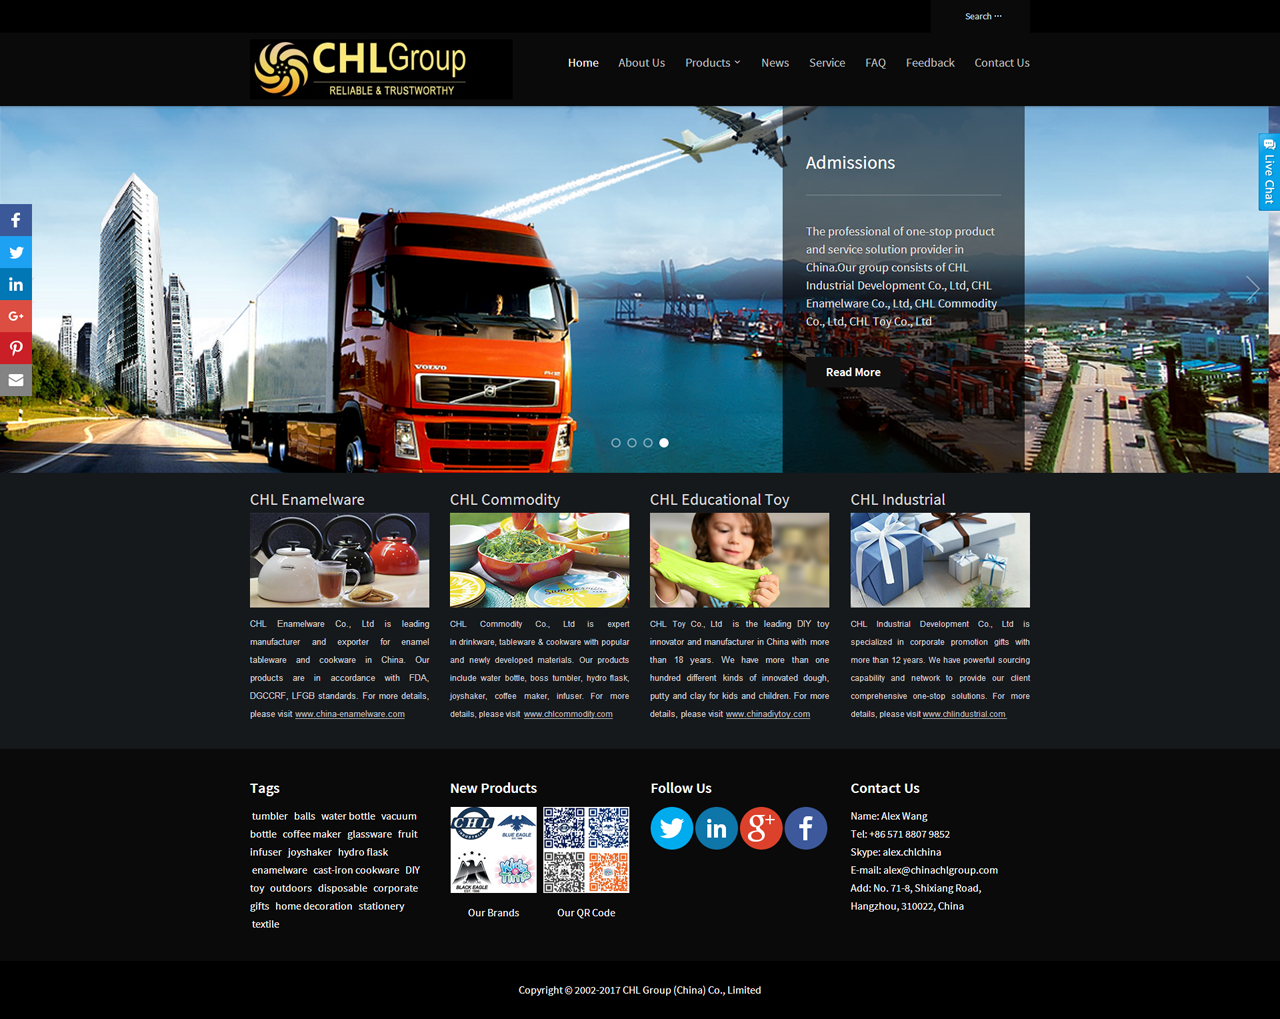 CHL Group (China) Co., Limited